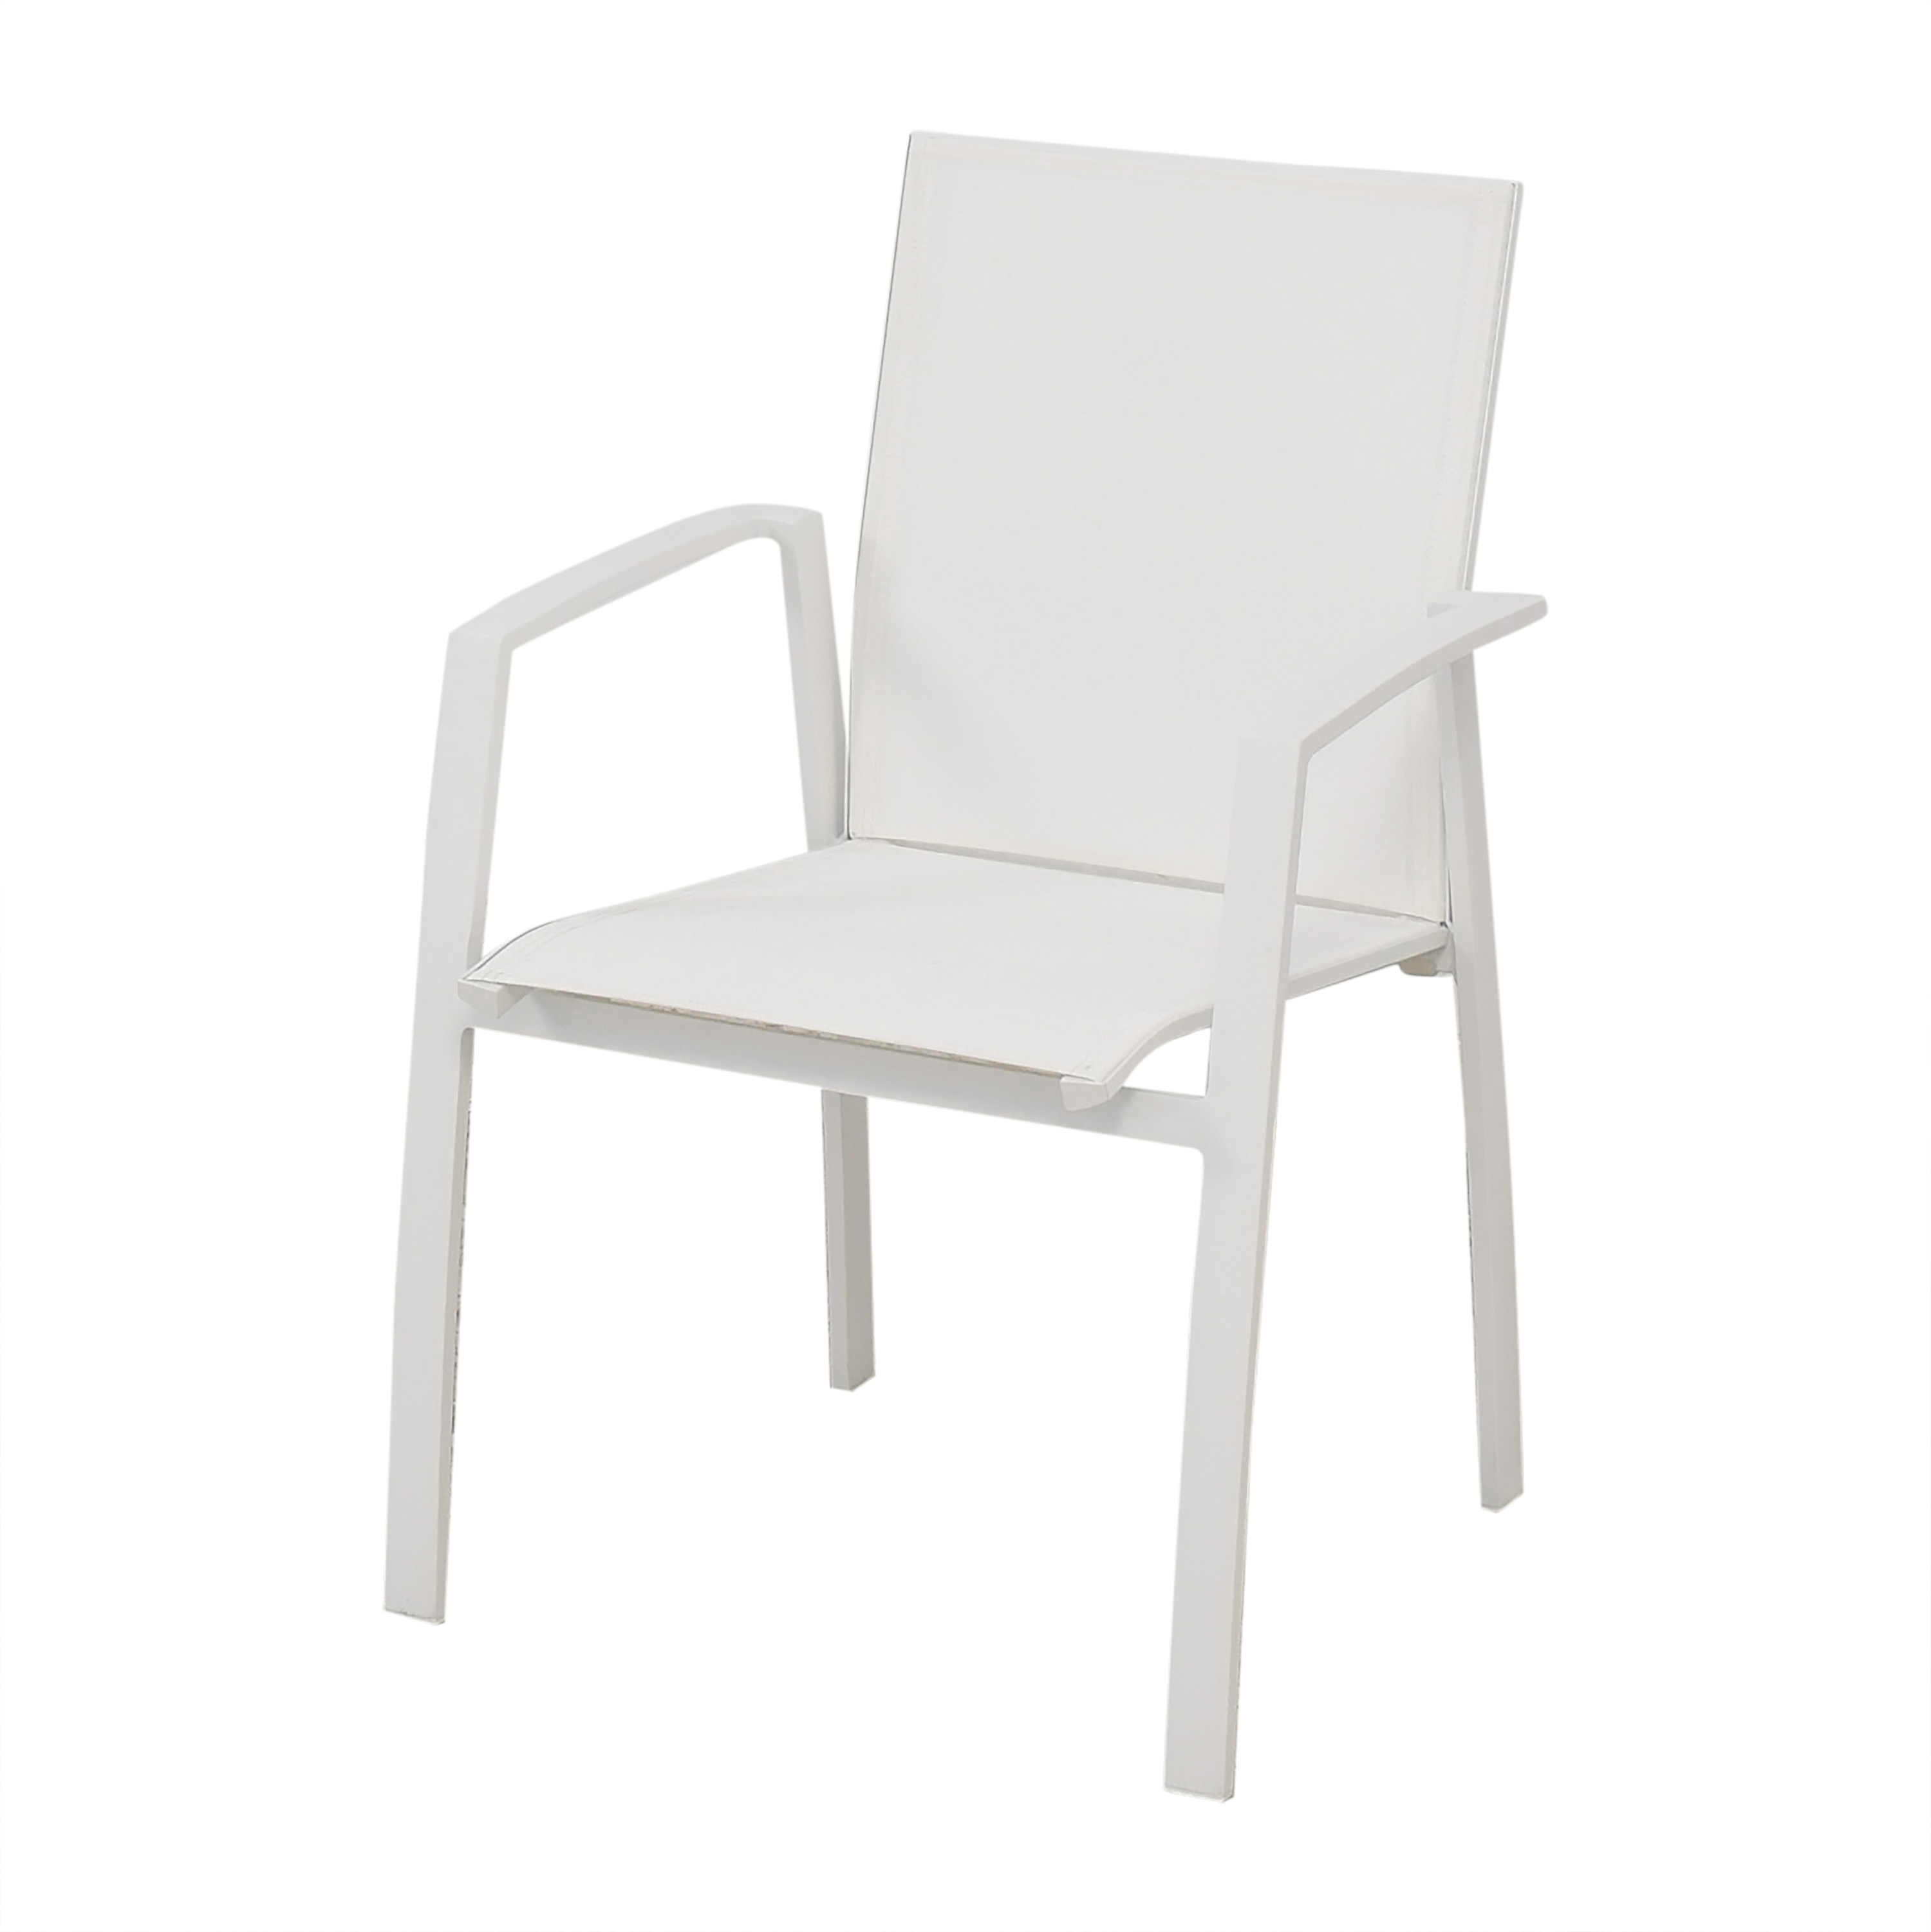 shop Frontgate Frontgate Newport Dining Chairs online